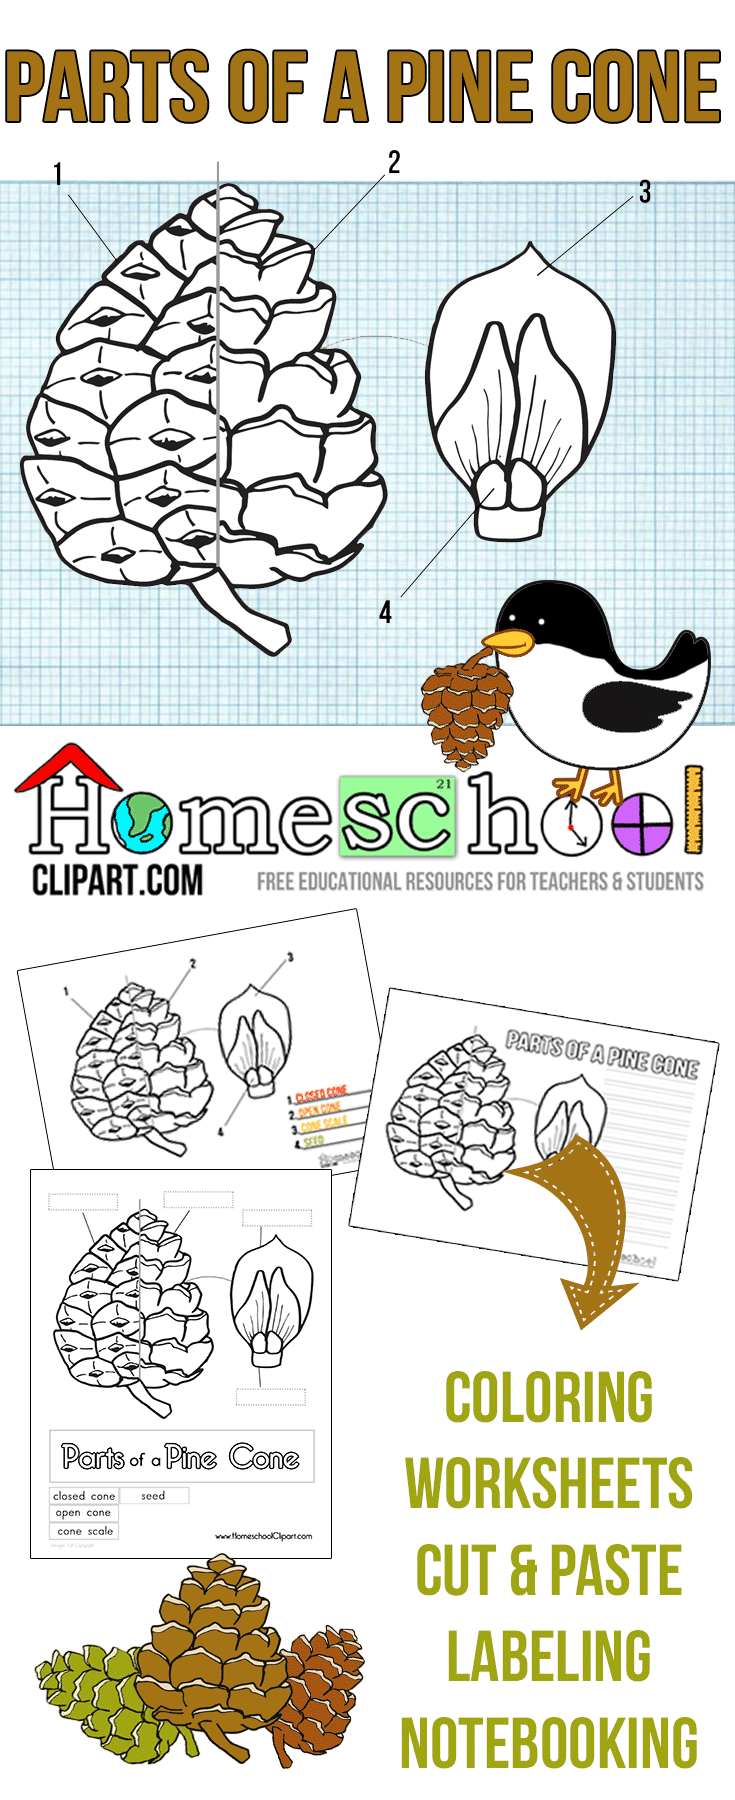 Pine Cone Science Printables - The Crafty Classroom